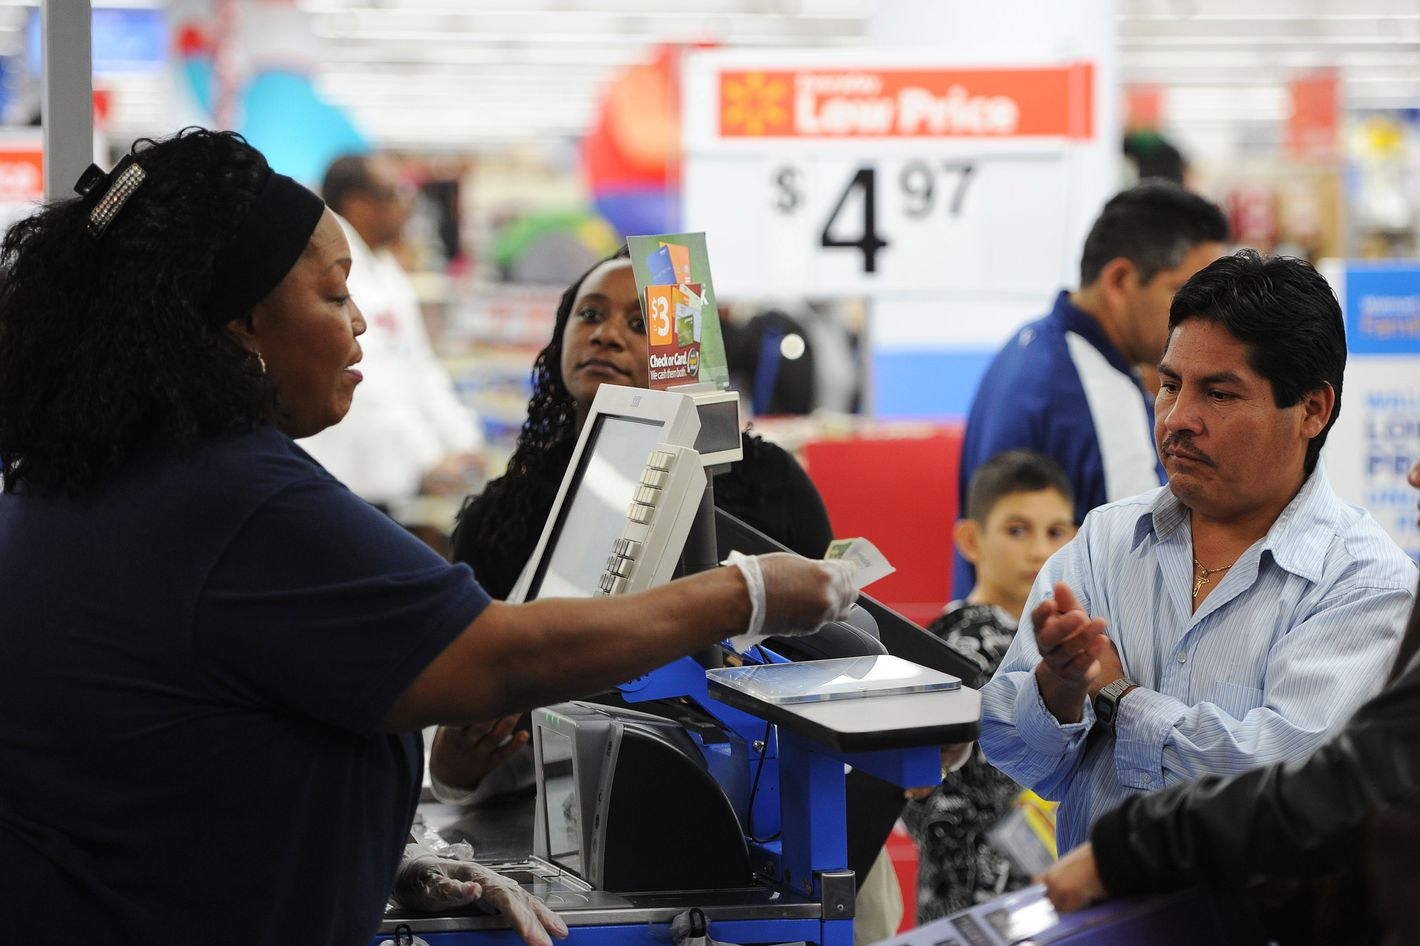 """An employee rings up sales at a cash register at a  Walmart in the Crenshaw district of Los Angeles on Black Friday, November 29, 2013. US stocks Friday moved higher in a holiday-shortened session following better eurozone economic data and positive early assessments of """"Black Friday"""" shopping traffic by some leading retailers.    AFP PHOTO / Robyn Beck        (Photo credit should read ROBYN BECK/AFP/Getty Images)"""